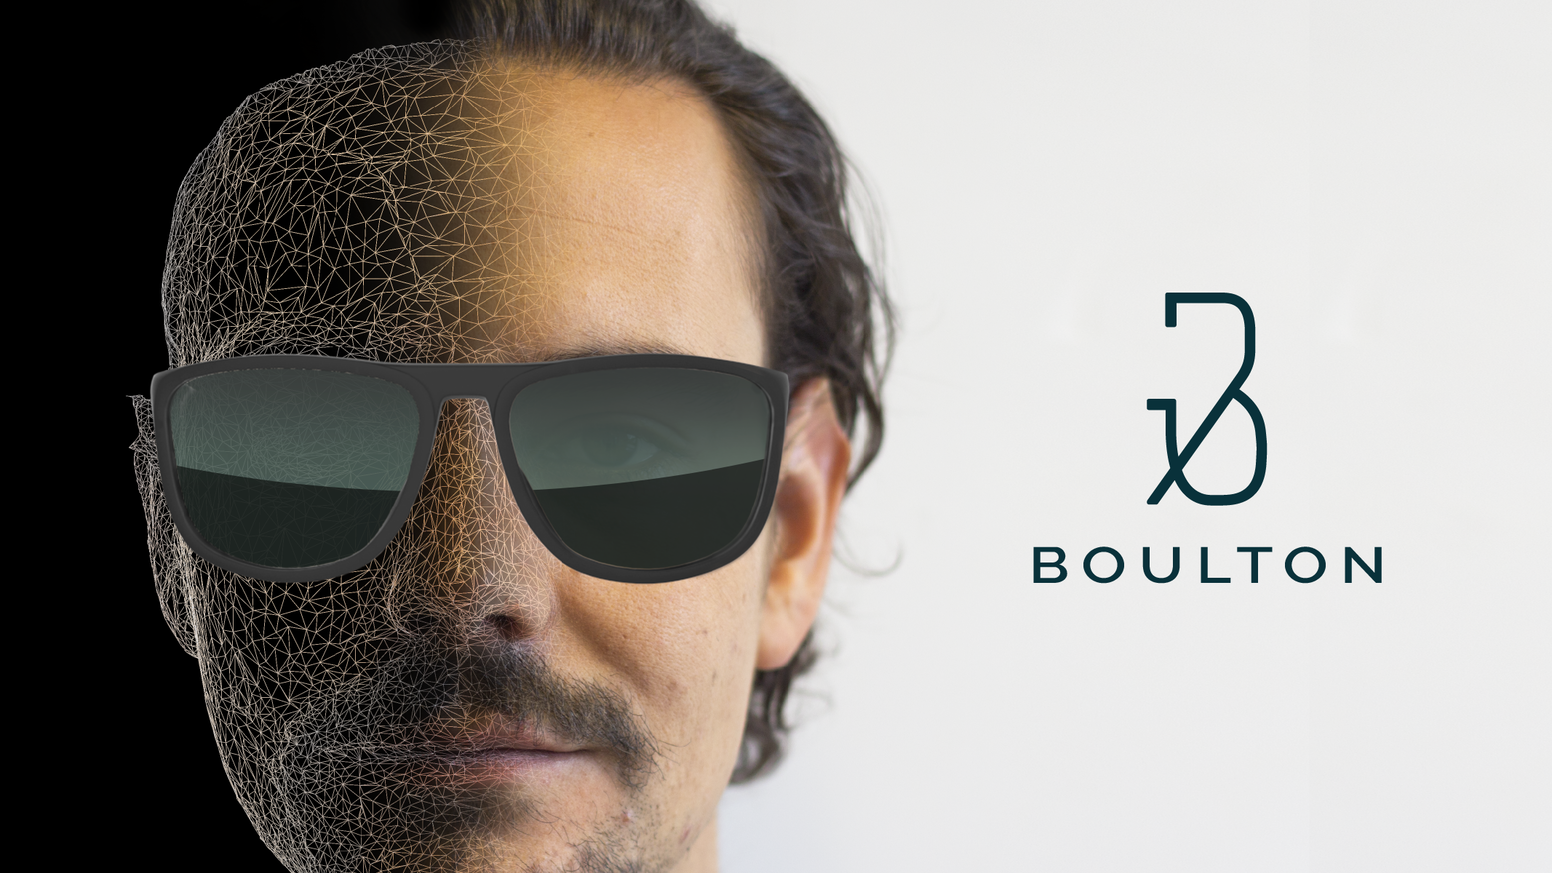 Everybody is unique. That is why Boulton Eyewear tailors every customizable frame to fit you perfectly.